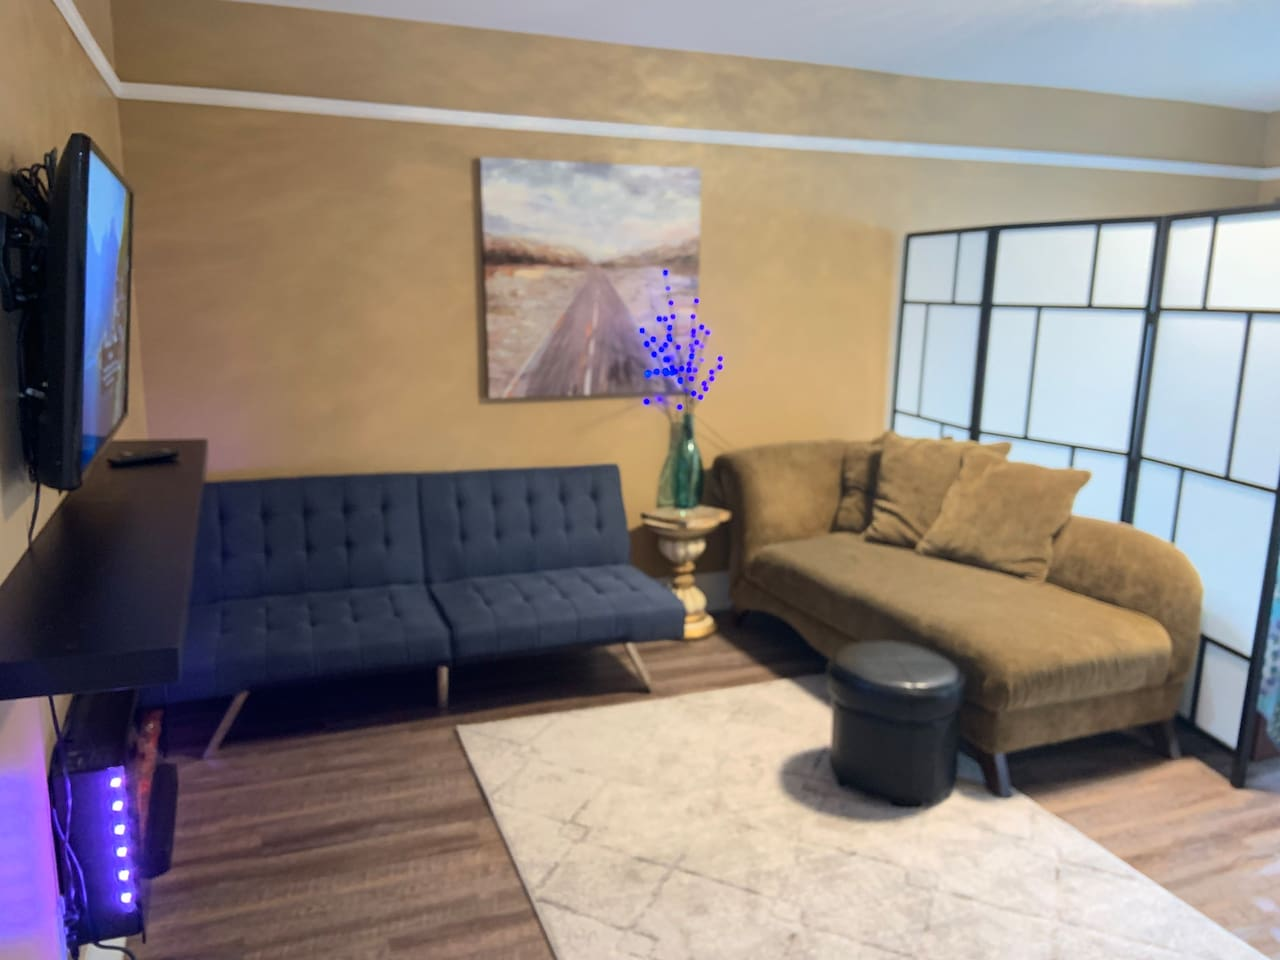 Living Room + Foldable Eurolounger couch